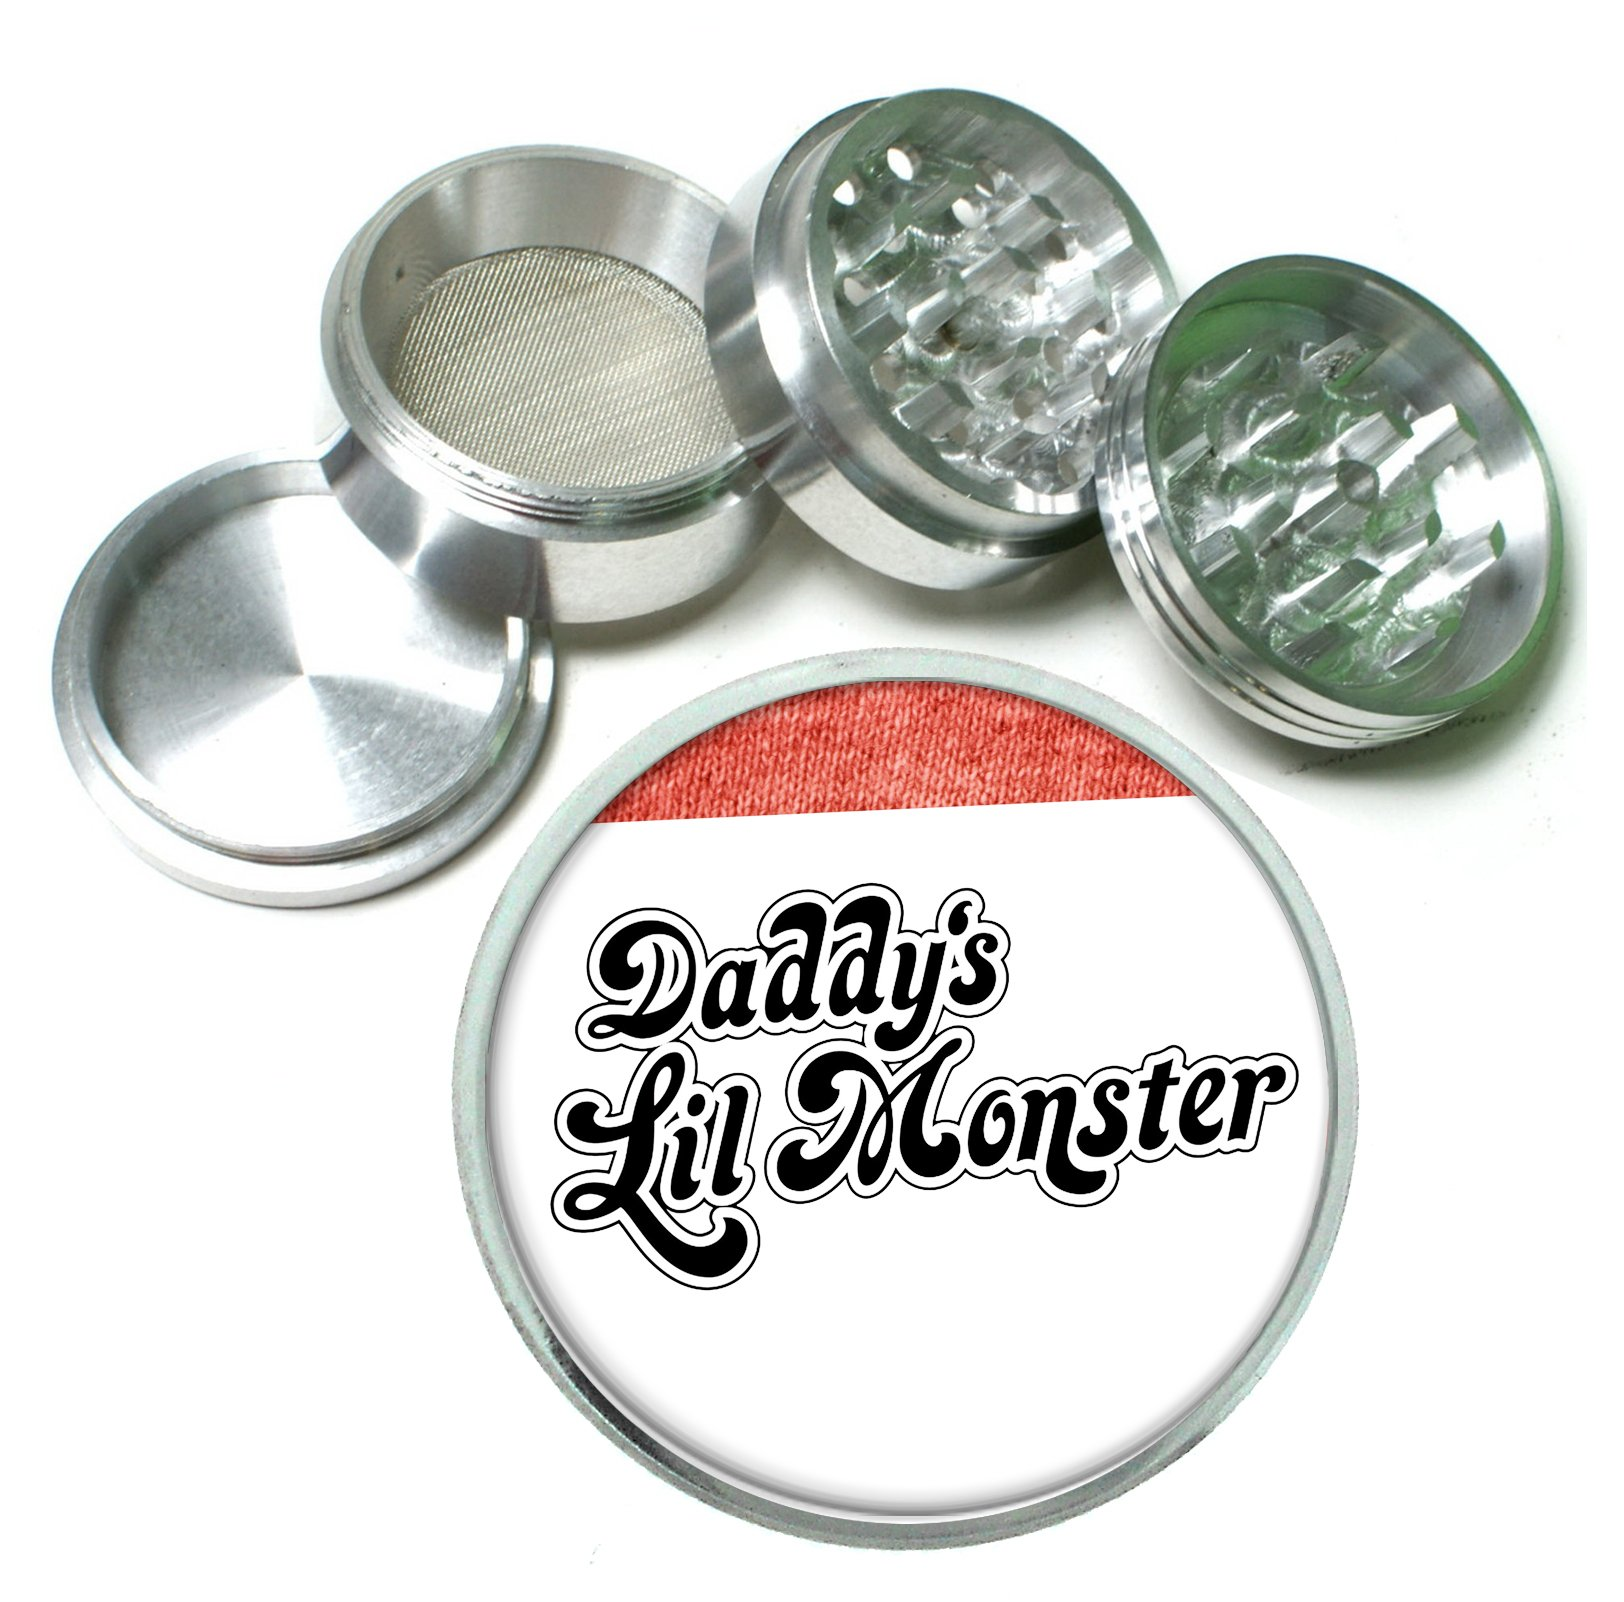 Daddy's Lil Monster Comic Book Movie Harley 4 Pc. Aluminum Tobacco Spice Herb Grinder